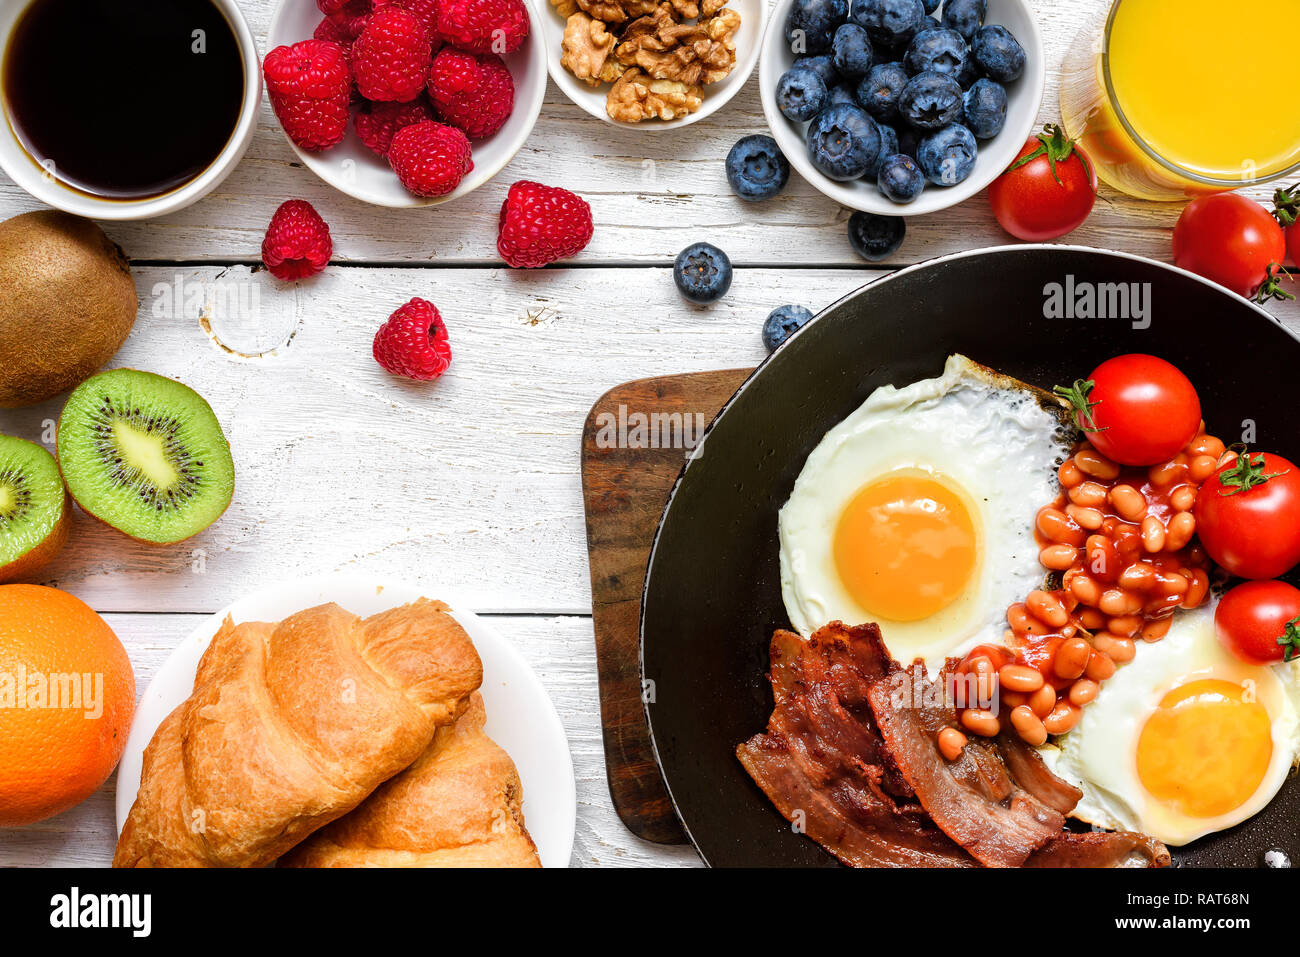 Breakfast including coffee, fried egg ,bacon, beans, croissant, orange juice with fruits and berries. top view - Stock Image